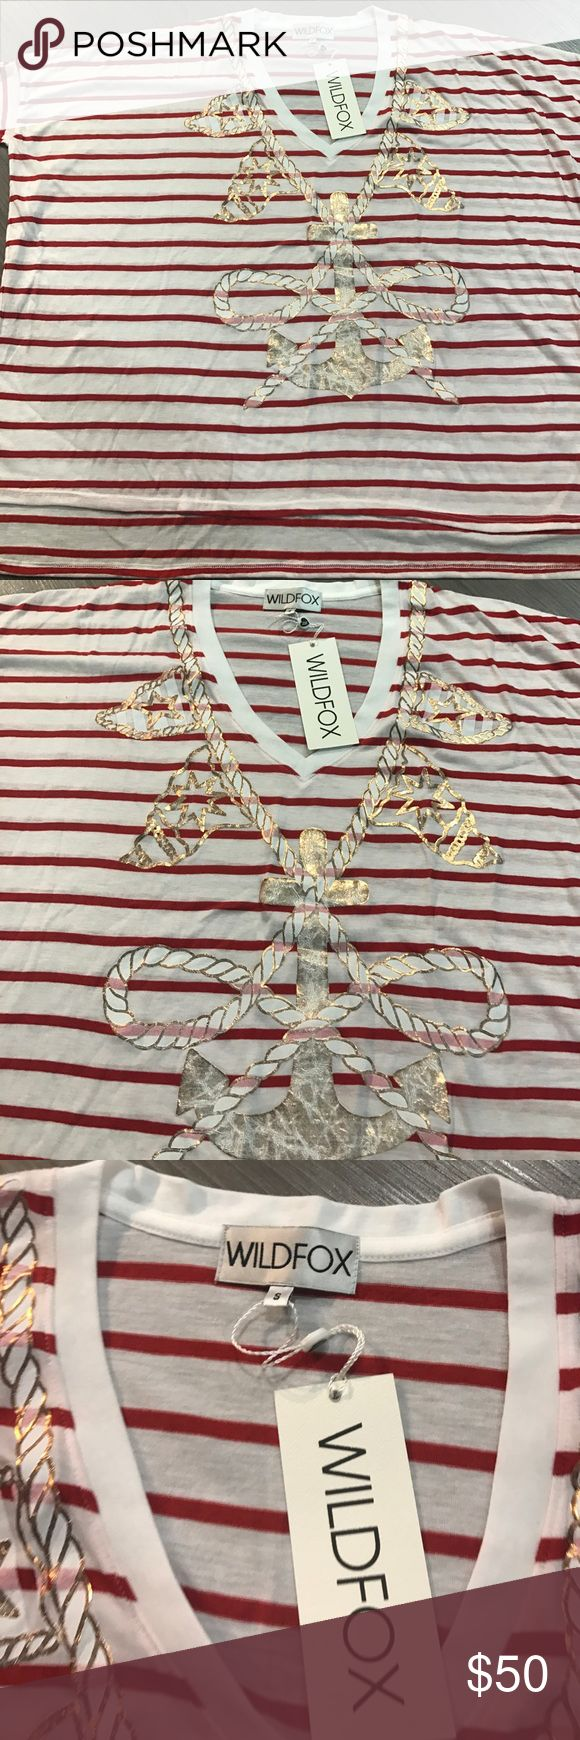 Wildfox shirt top Trend anchor rope striped new s Women's Wildfox top shirt lose big grunge the look size small has an anchor on the front white gold and red sailor style Wildfox Couture Tops Tees - Short Sleeve